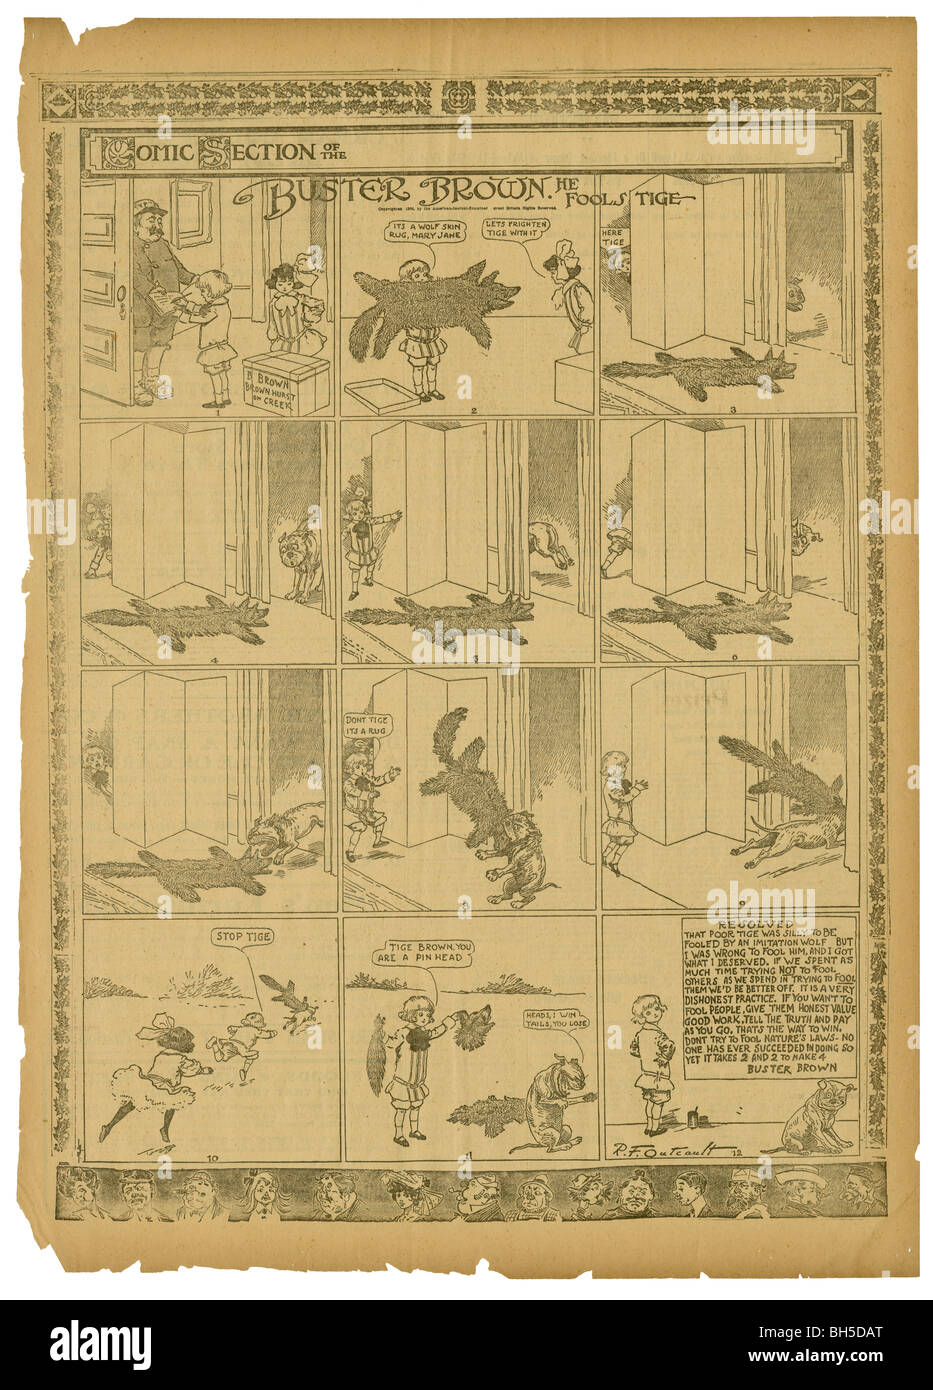 1906 comics page, Buster Brown by R.F. Outcault. Buster and Mary Jane used a wolf skin rug to fool their dog, Tige. - Stock Image